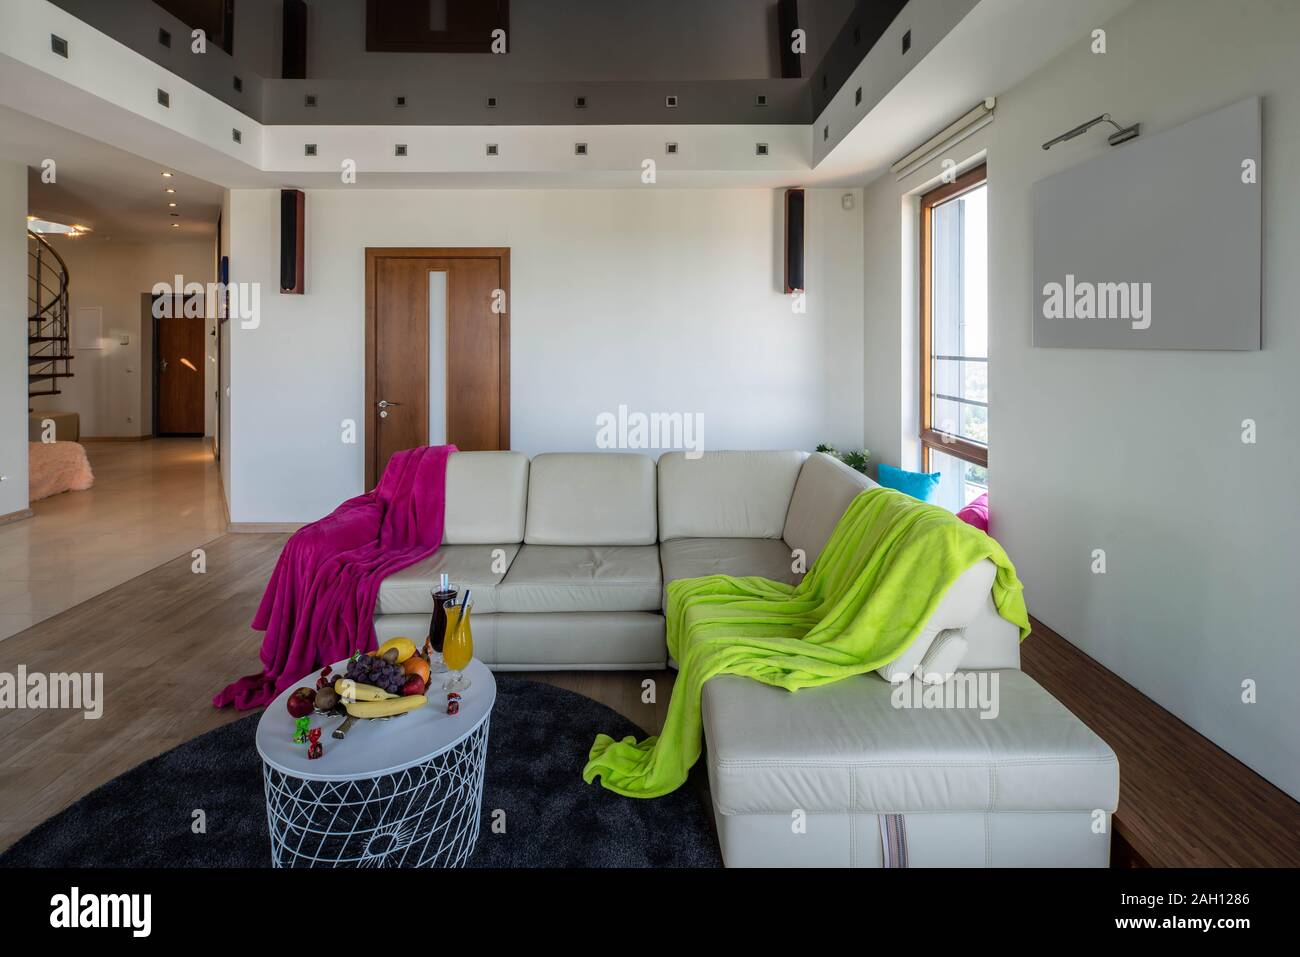 View Of Cozy Sofa And Small Table With Fruits And Drinks In Modern Luxury Apartment Stock Photo Alamy